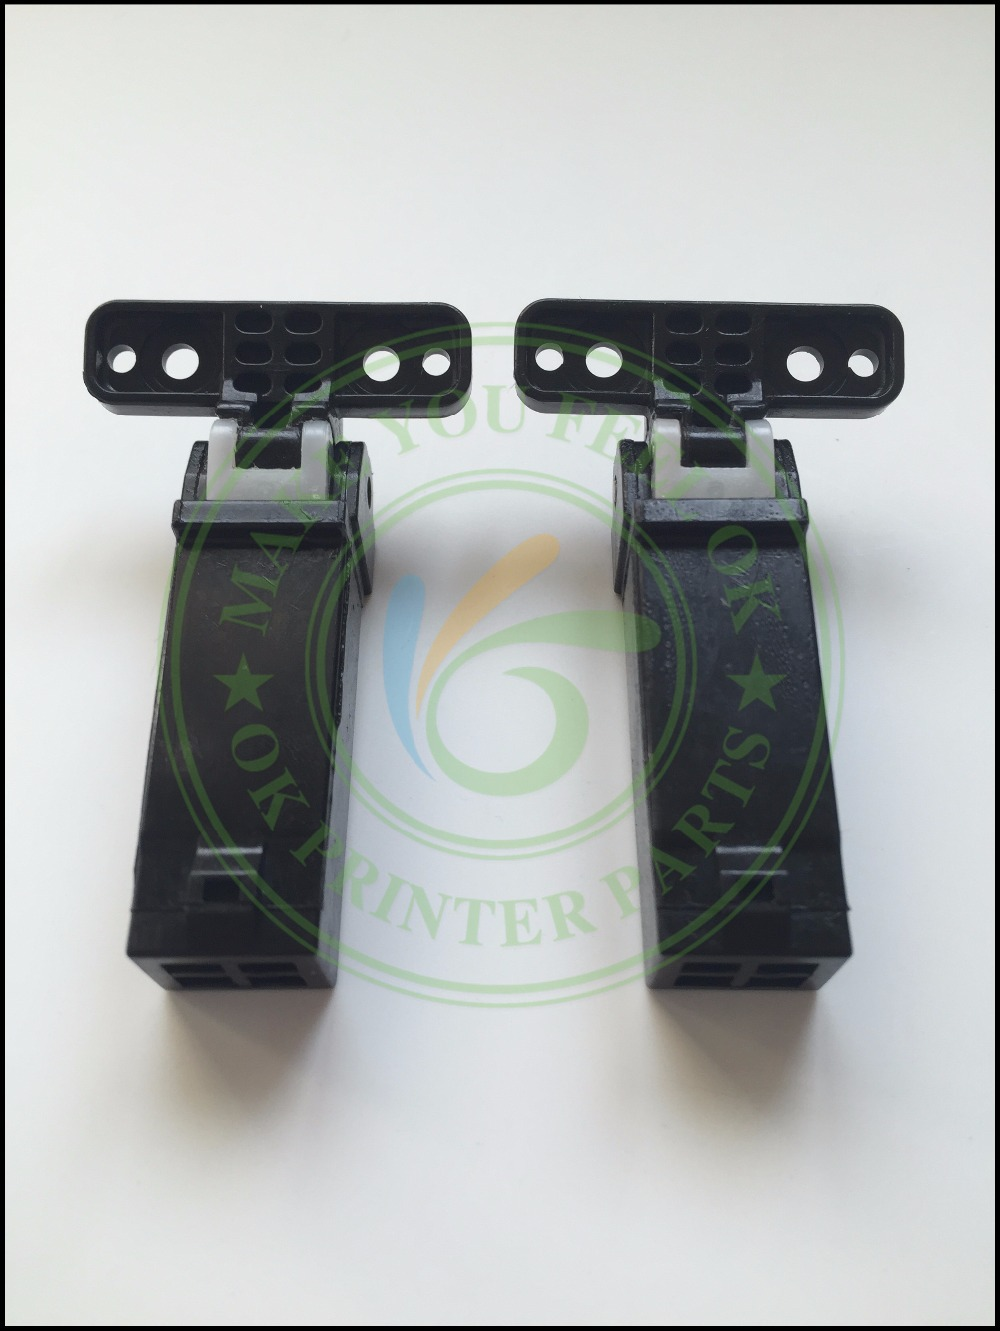 10 ADF Mea Unit Hinge Assembly for Samsung SCX4835 4600 4623 4833 4727 4728 4729 5639 5739 CLX3170 3175 3185 3400 3401 3405 3406 original new 4712 001031 thermostat for samsung scx3200 3205 5835 4623 4828 5330 5635 4824 4200 ml1660 3050 2850 2851 clx3170